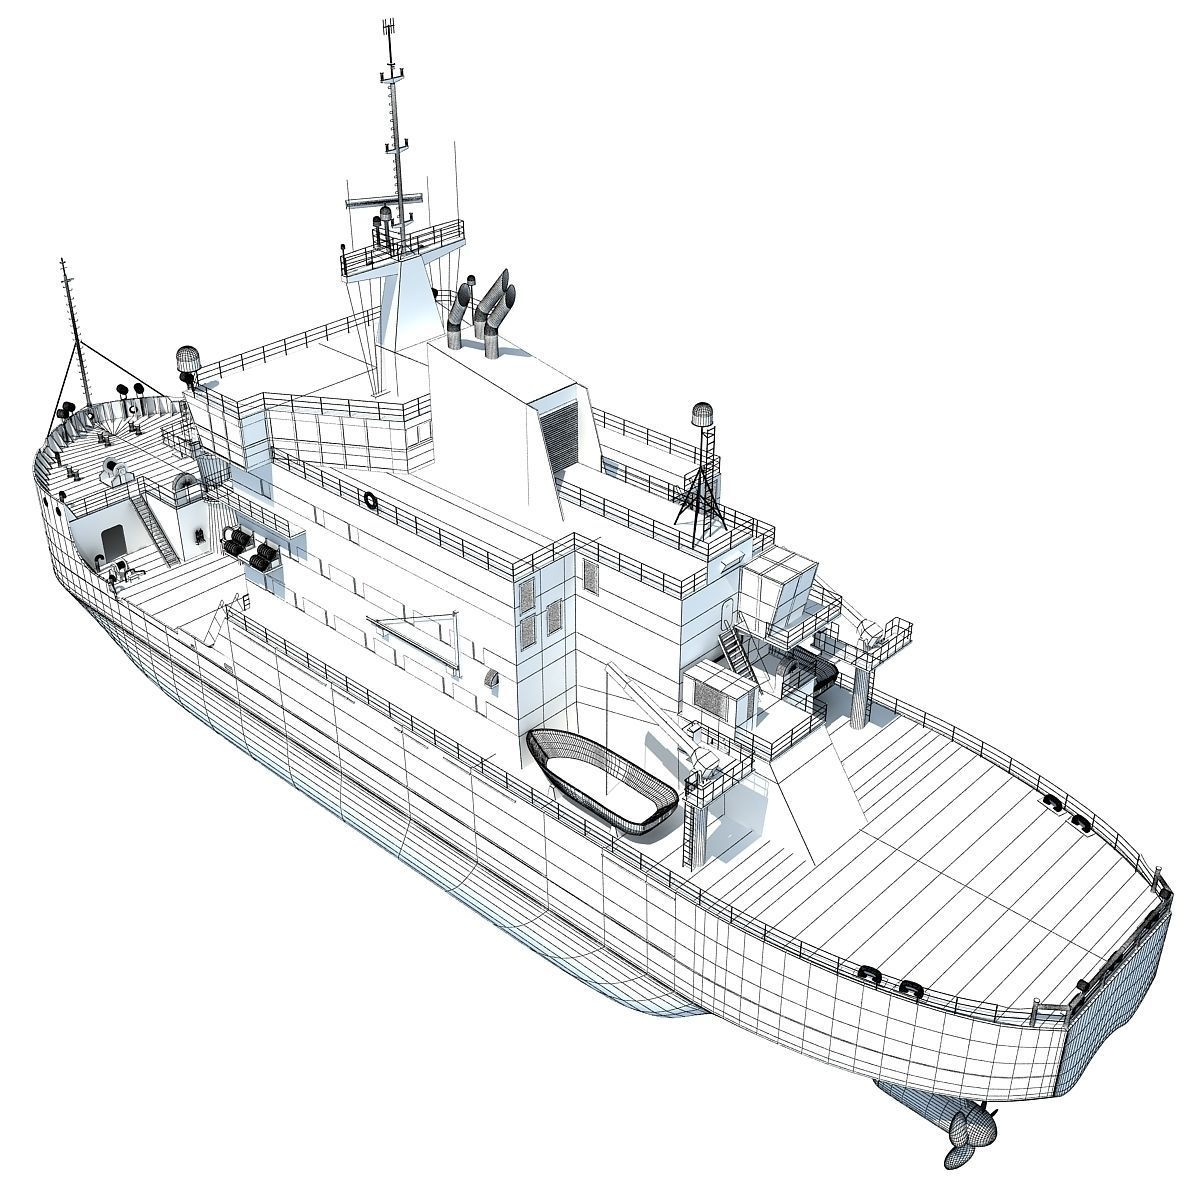 Us Coast Guard Icebreaker Mackinaw 3d Model X Obj 3ds